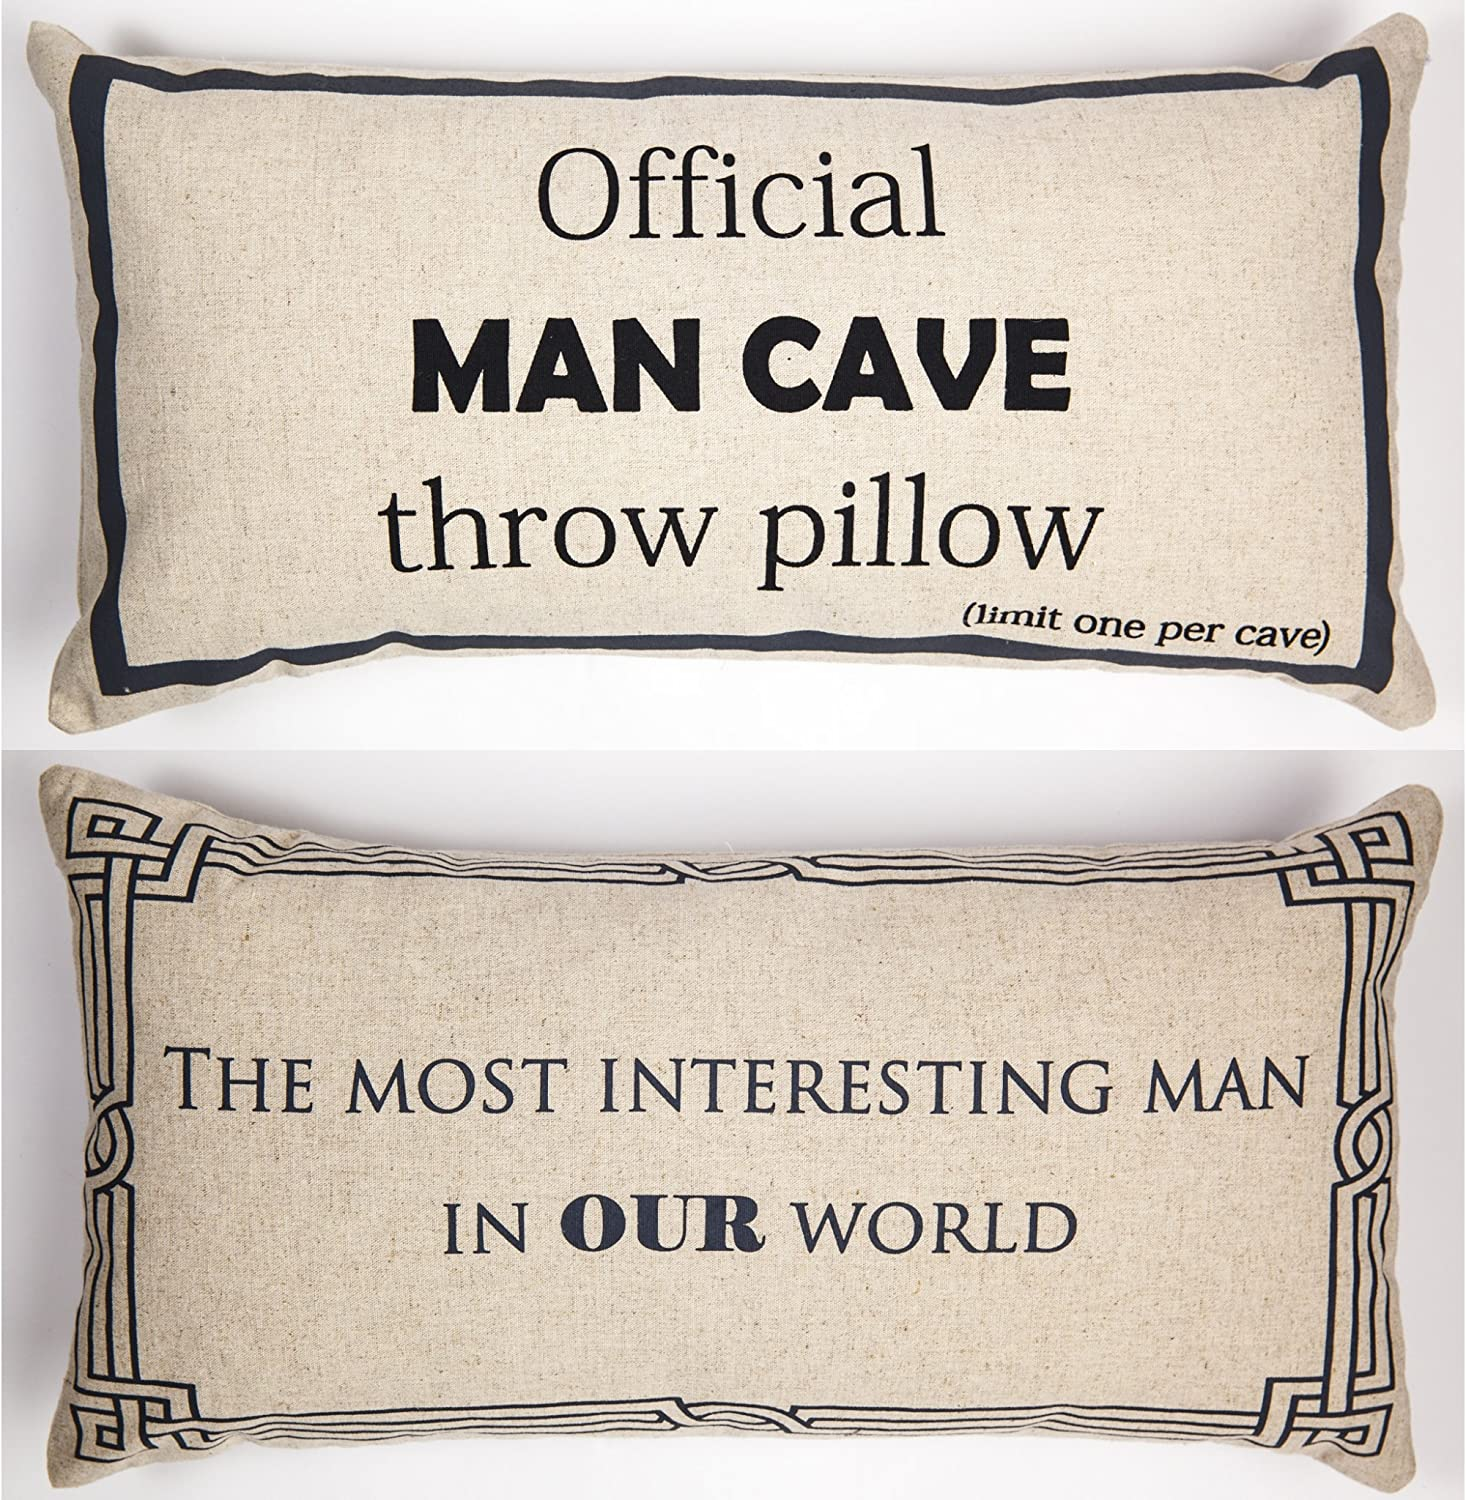 Mancave Gift for Him Message Throw Pillow